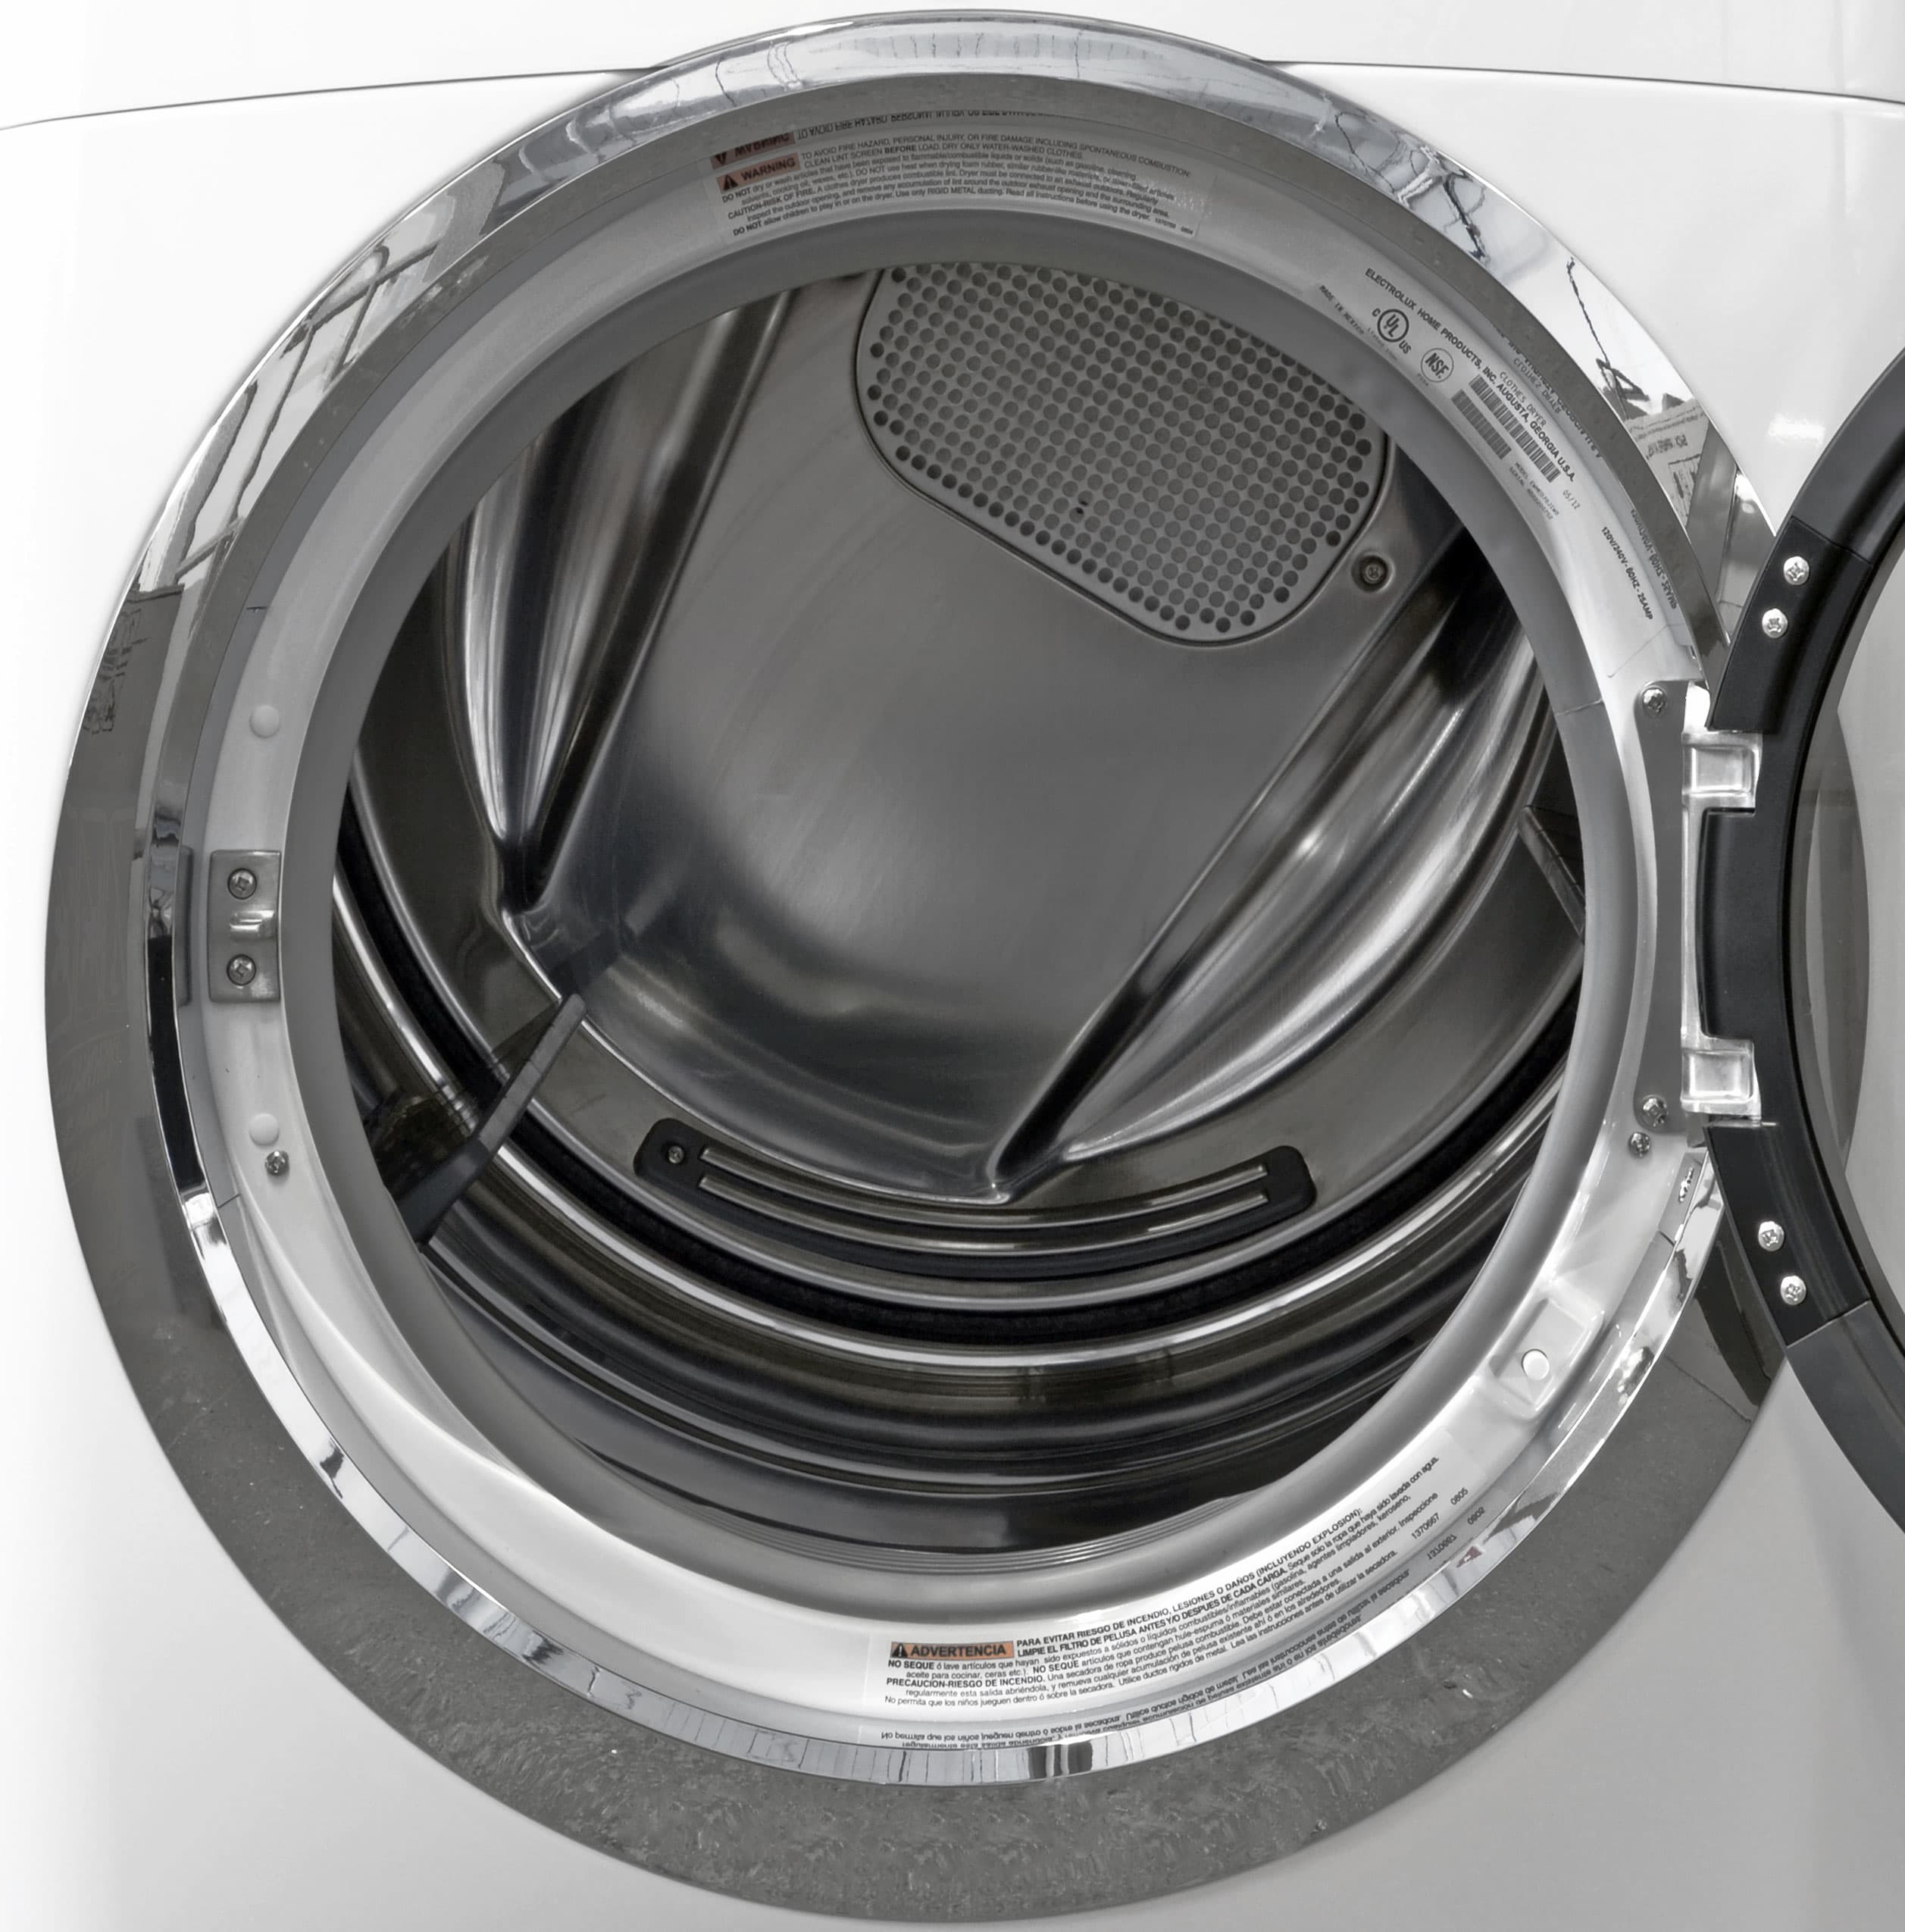 A stainless steel interior comes as no surprise for a high-end machine like the Electrolux EWMGD70JIW.